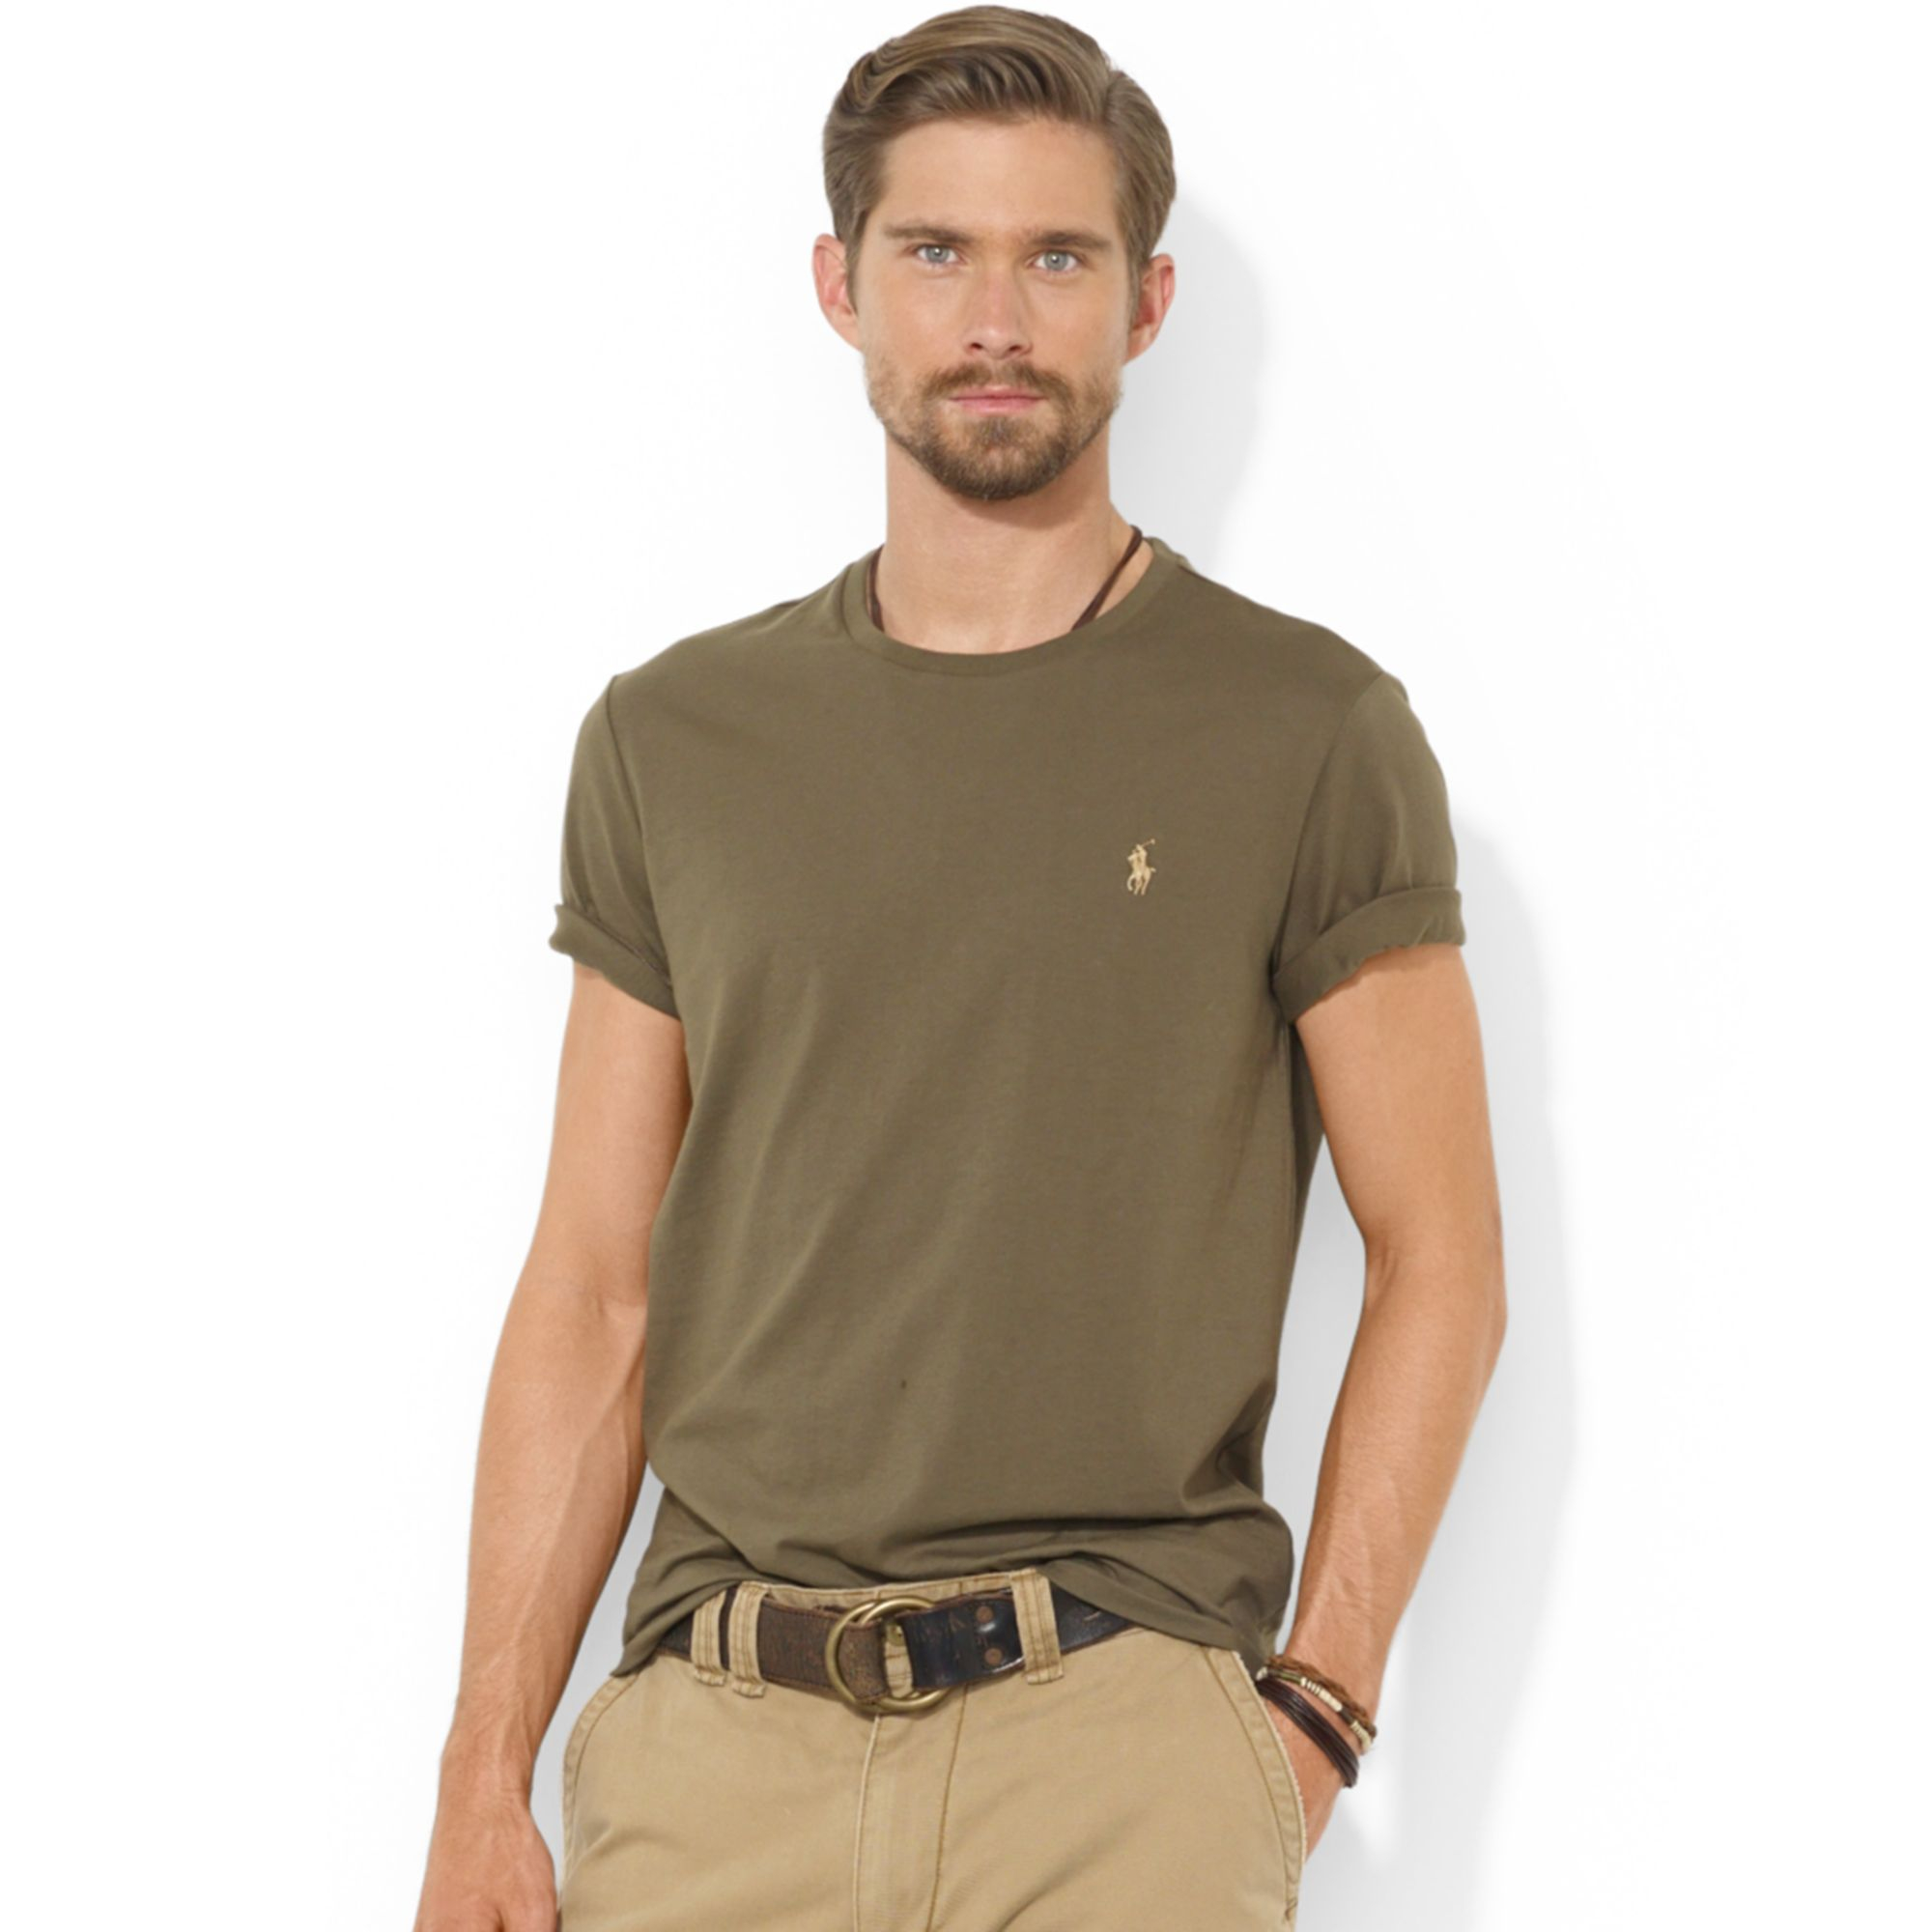 Ralph lauren polo customfit cotton jersey t shirt in green for Custom fit t shirts